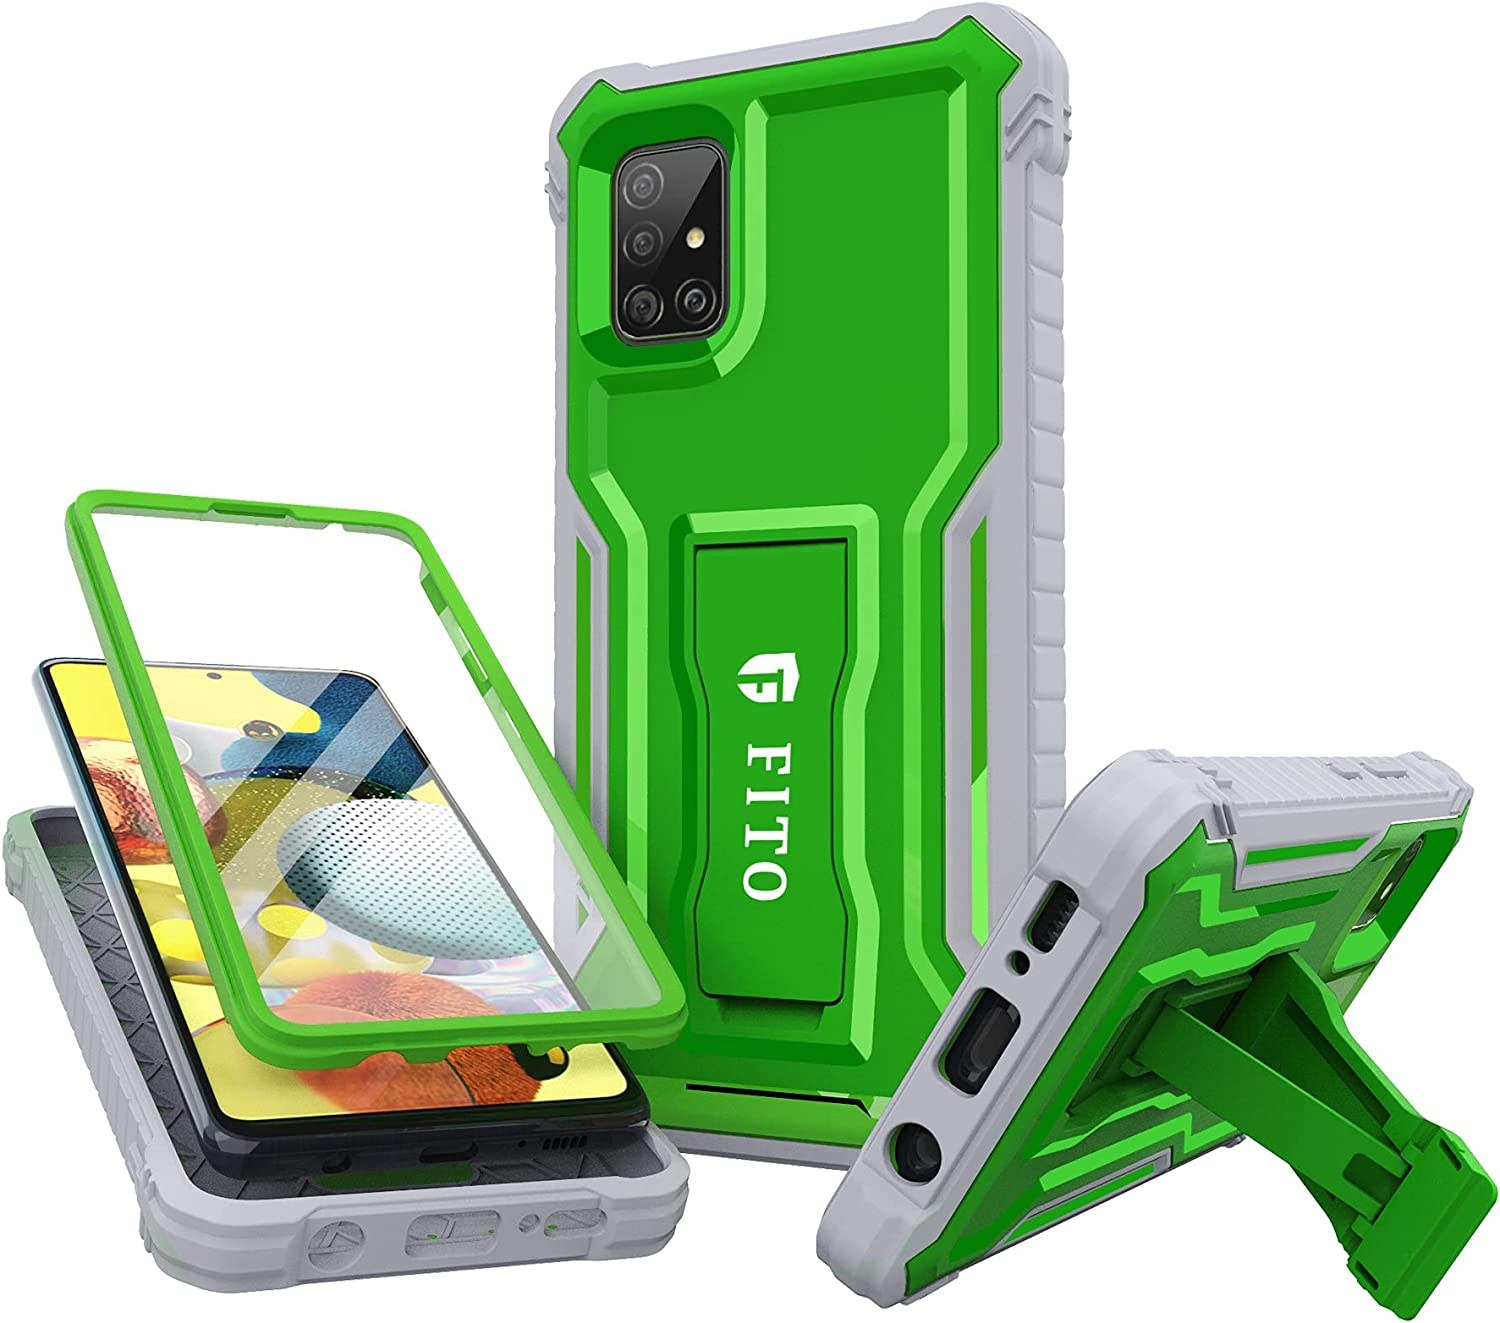 FITO Samsung Galaxy A51 5G Case, Dual Layer Shockproof Heavy Duty Case for Samsung A51 5G Phone with Screen Protector, Built-in Kickstand (Green)